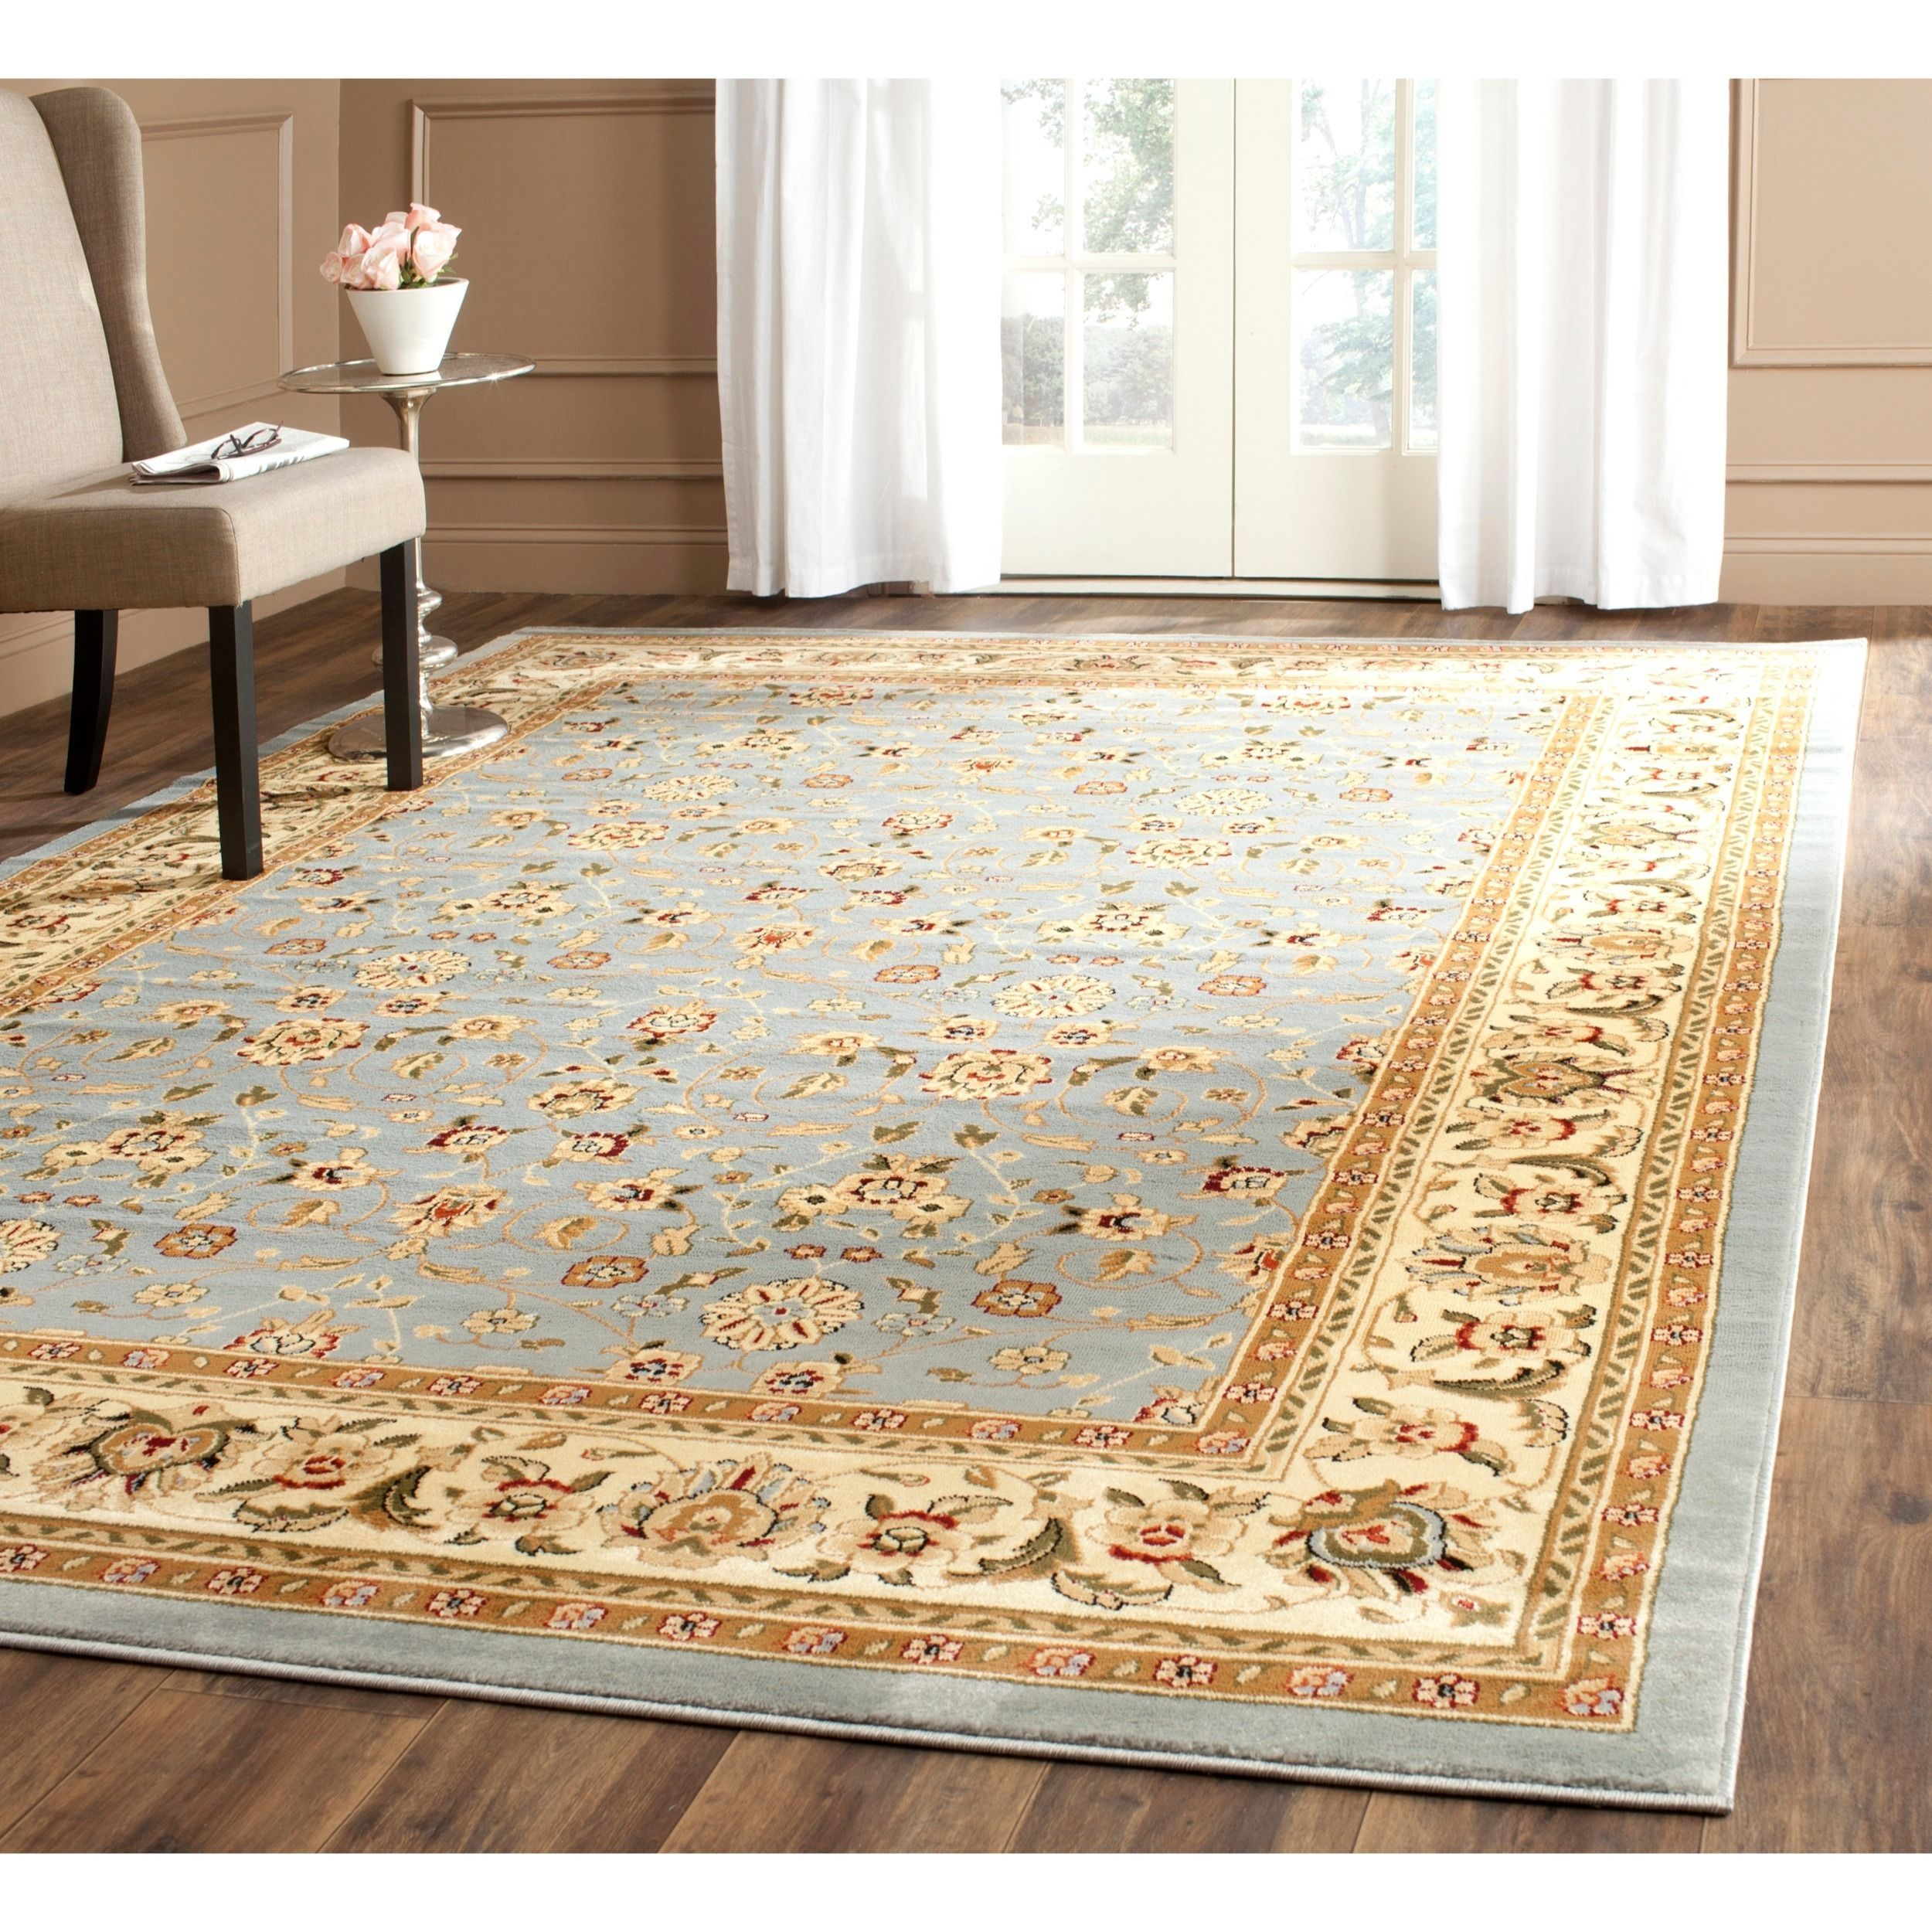 BrliTraditional Persian And European Designs Enhance Any Living Room Or